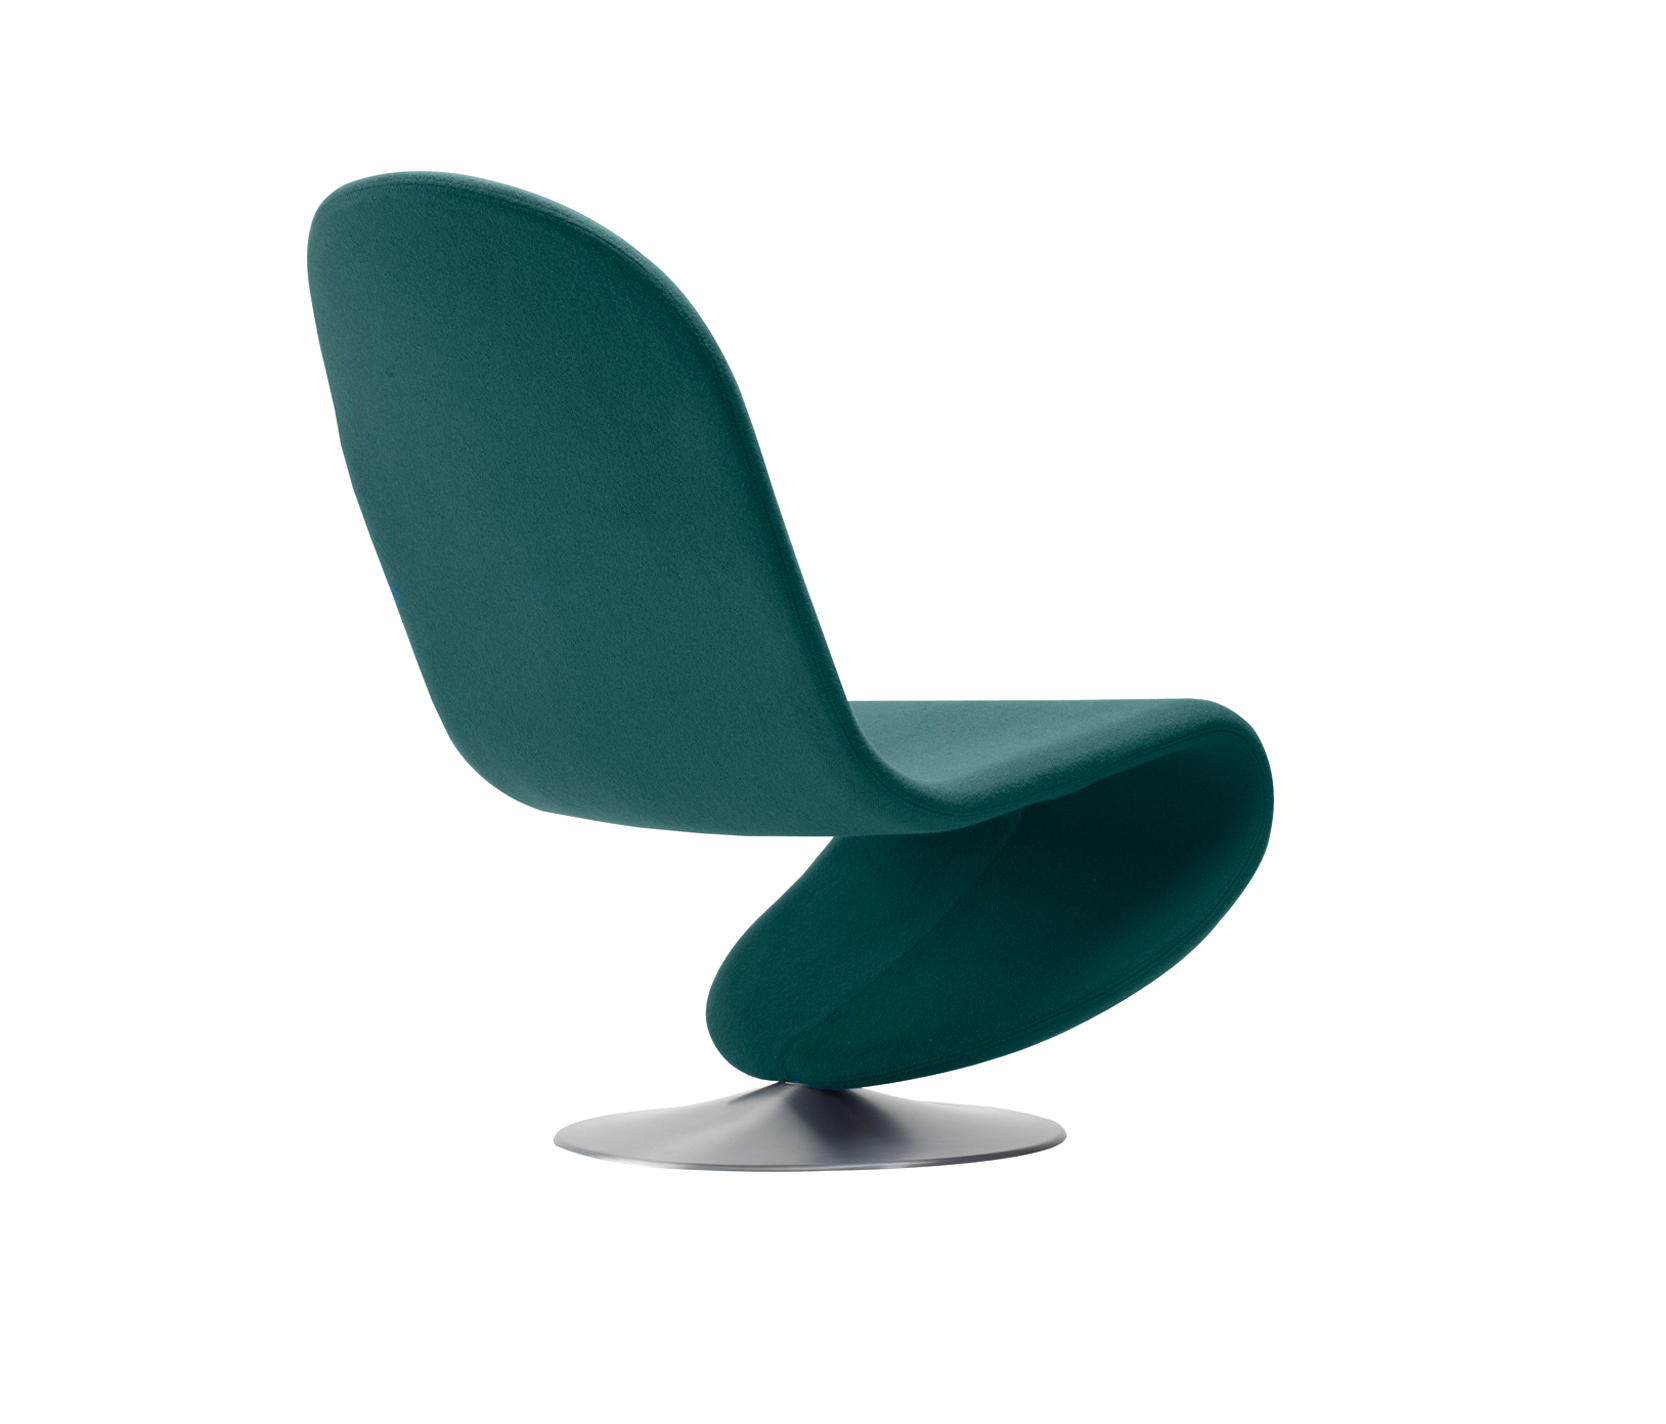 Sessel Multicolor System 1 2 3 Lounge Chair Standard Sessel Von Verpan Architonic